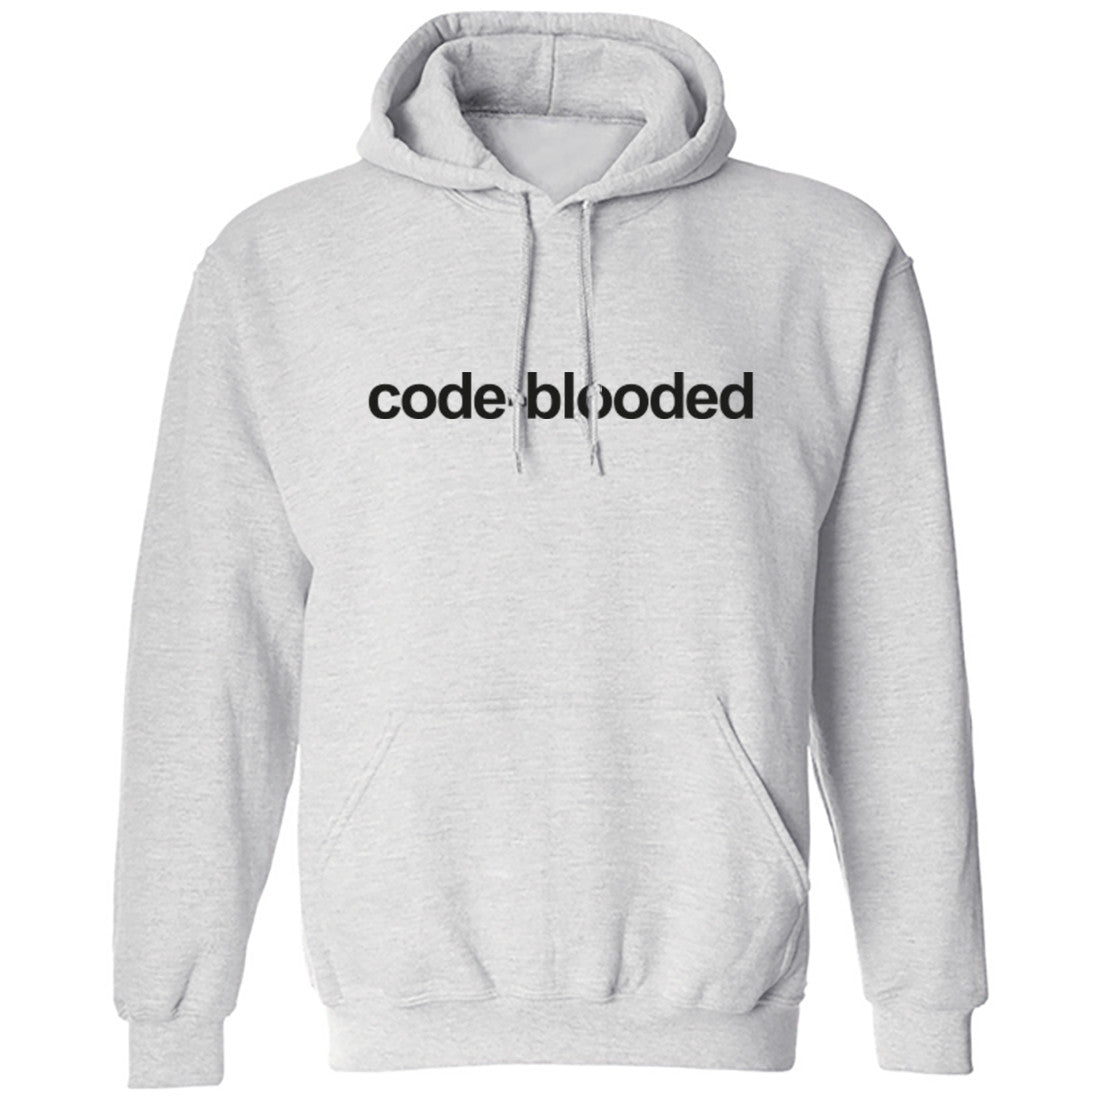 Code Blooded Unisex Hoodie K0183 - Illustrated Identity Ltd.